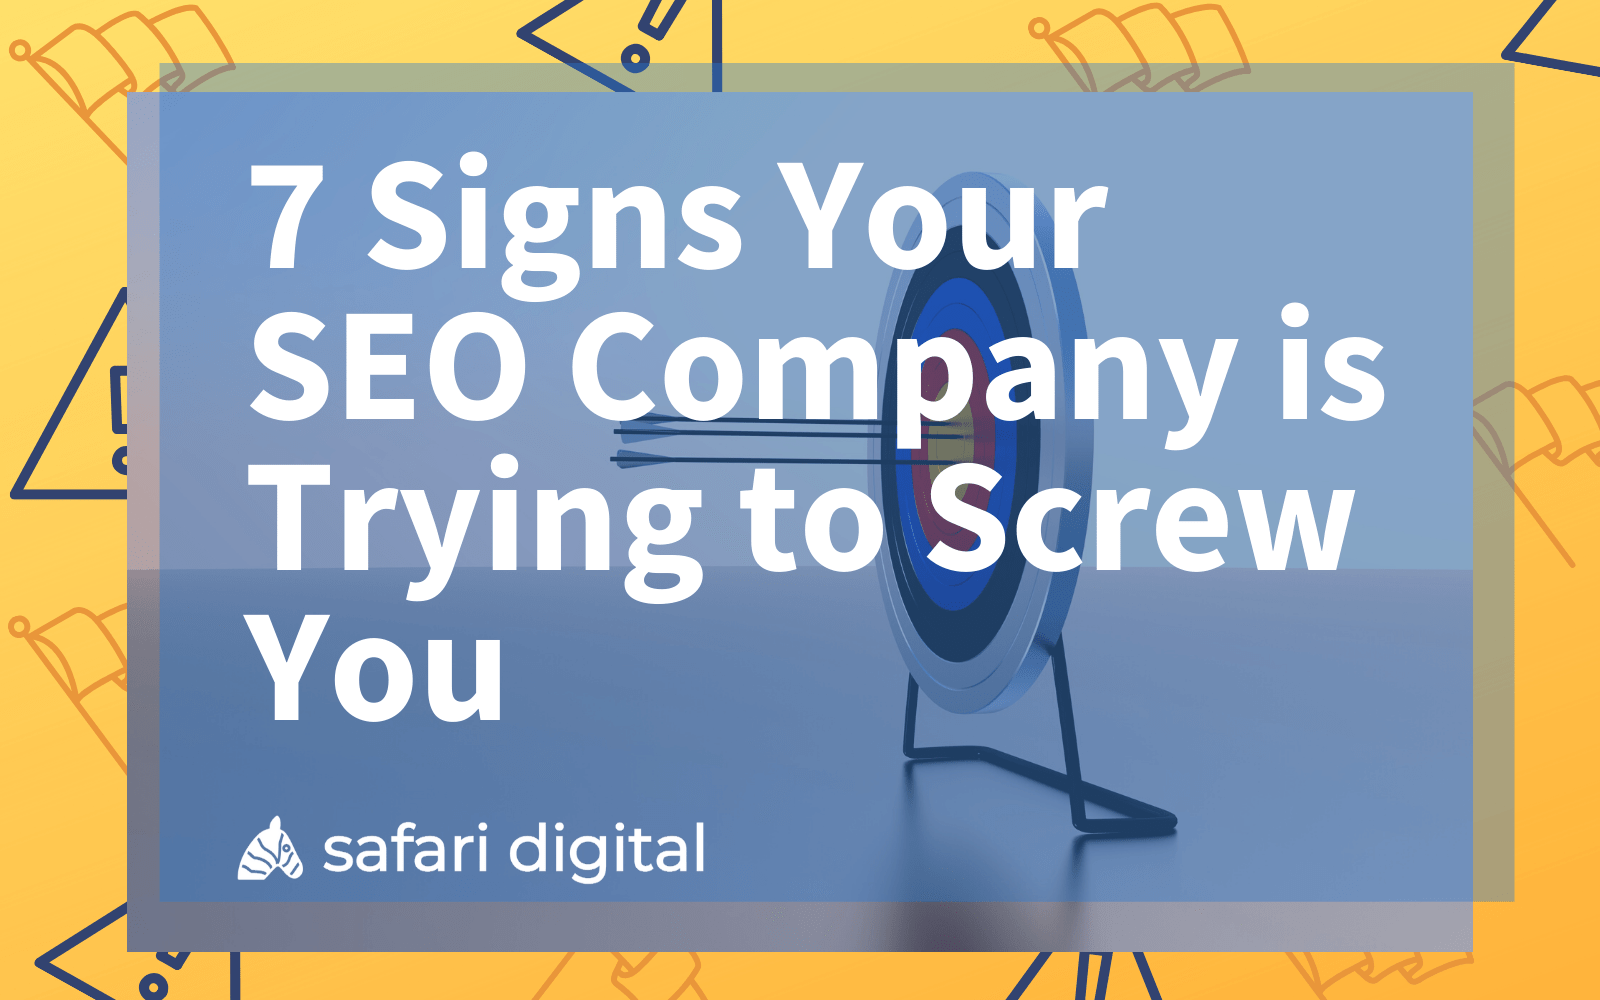 7 signs your seo company is trying to screw you - cover image